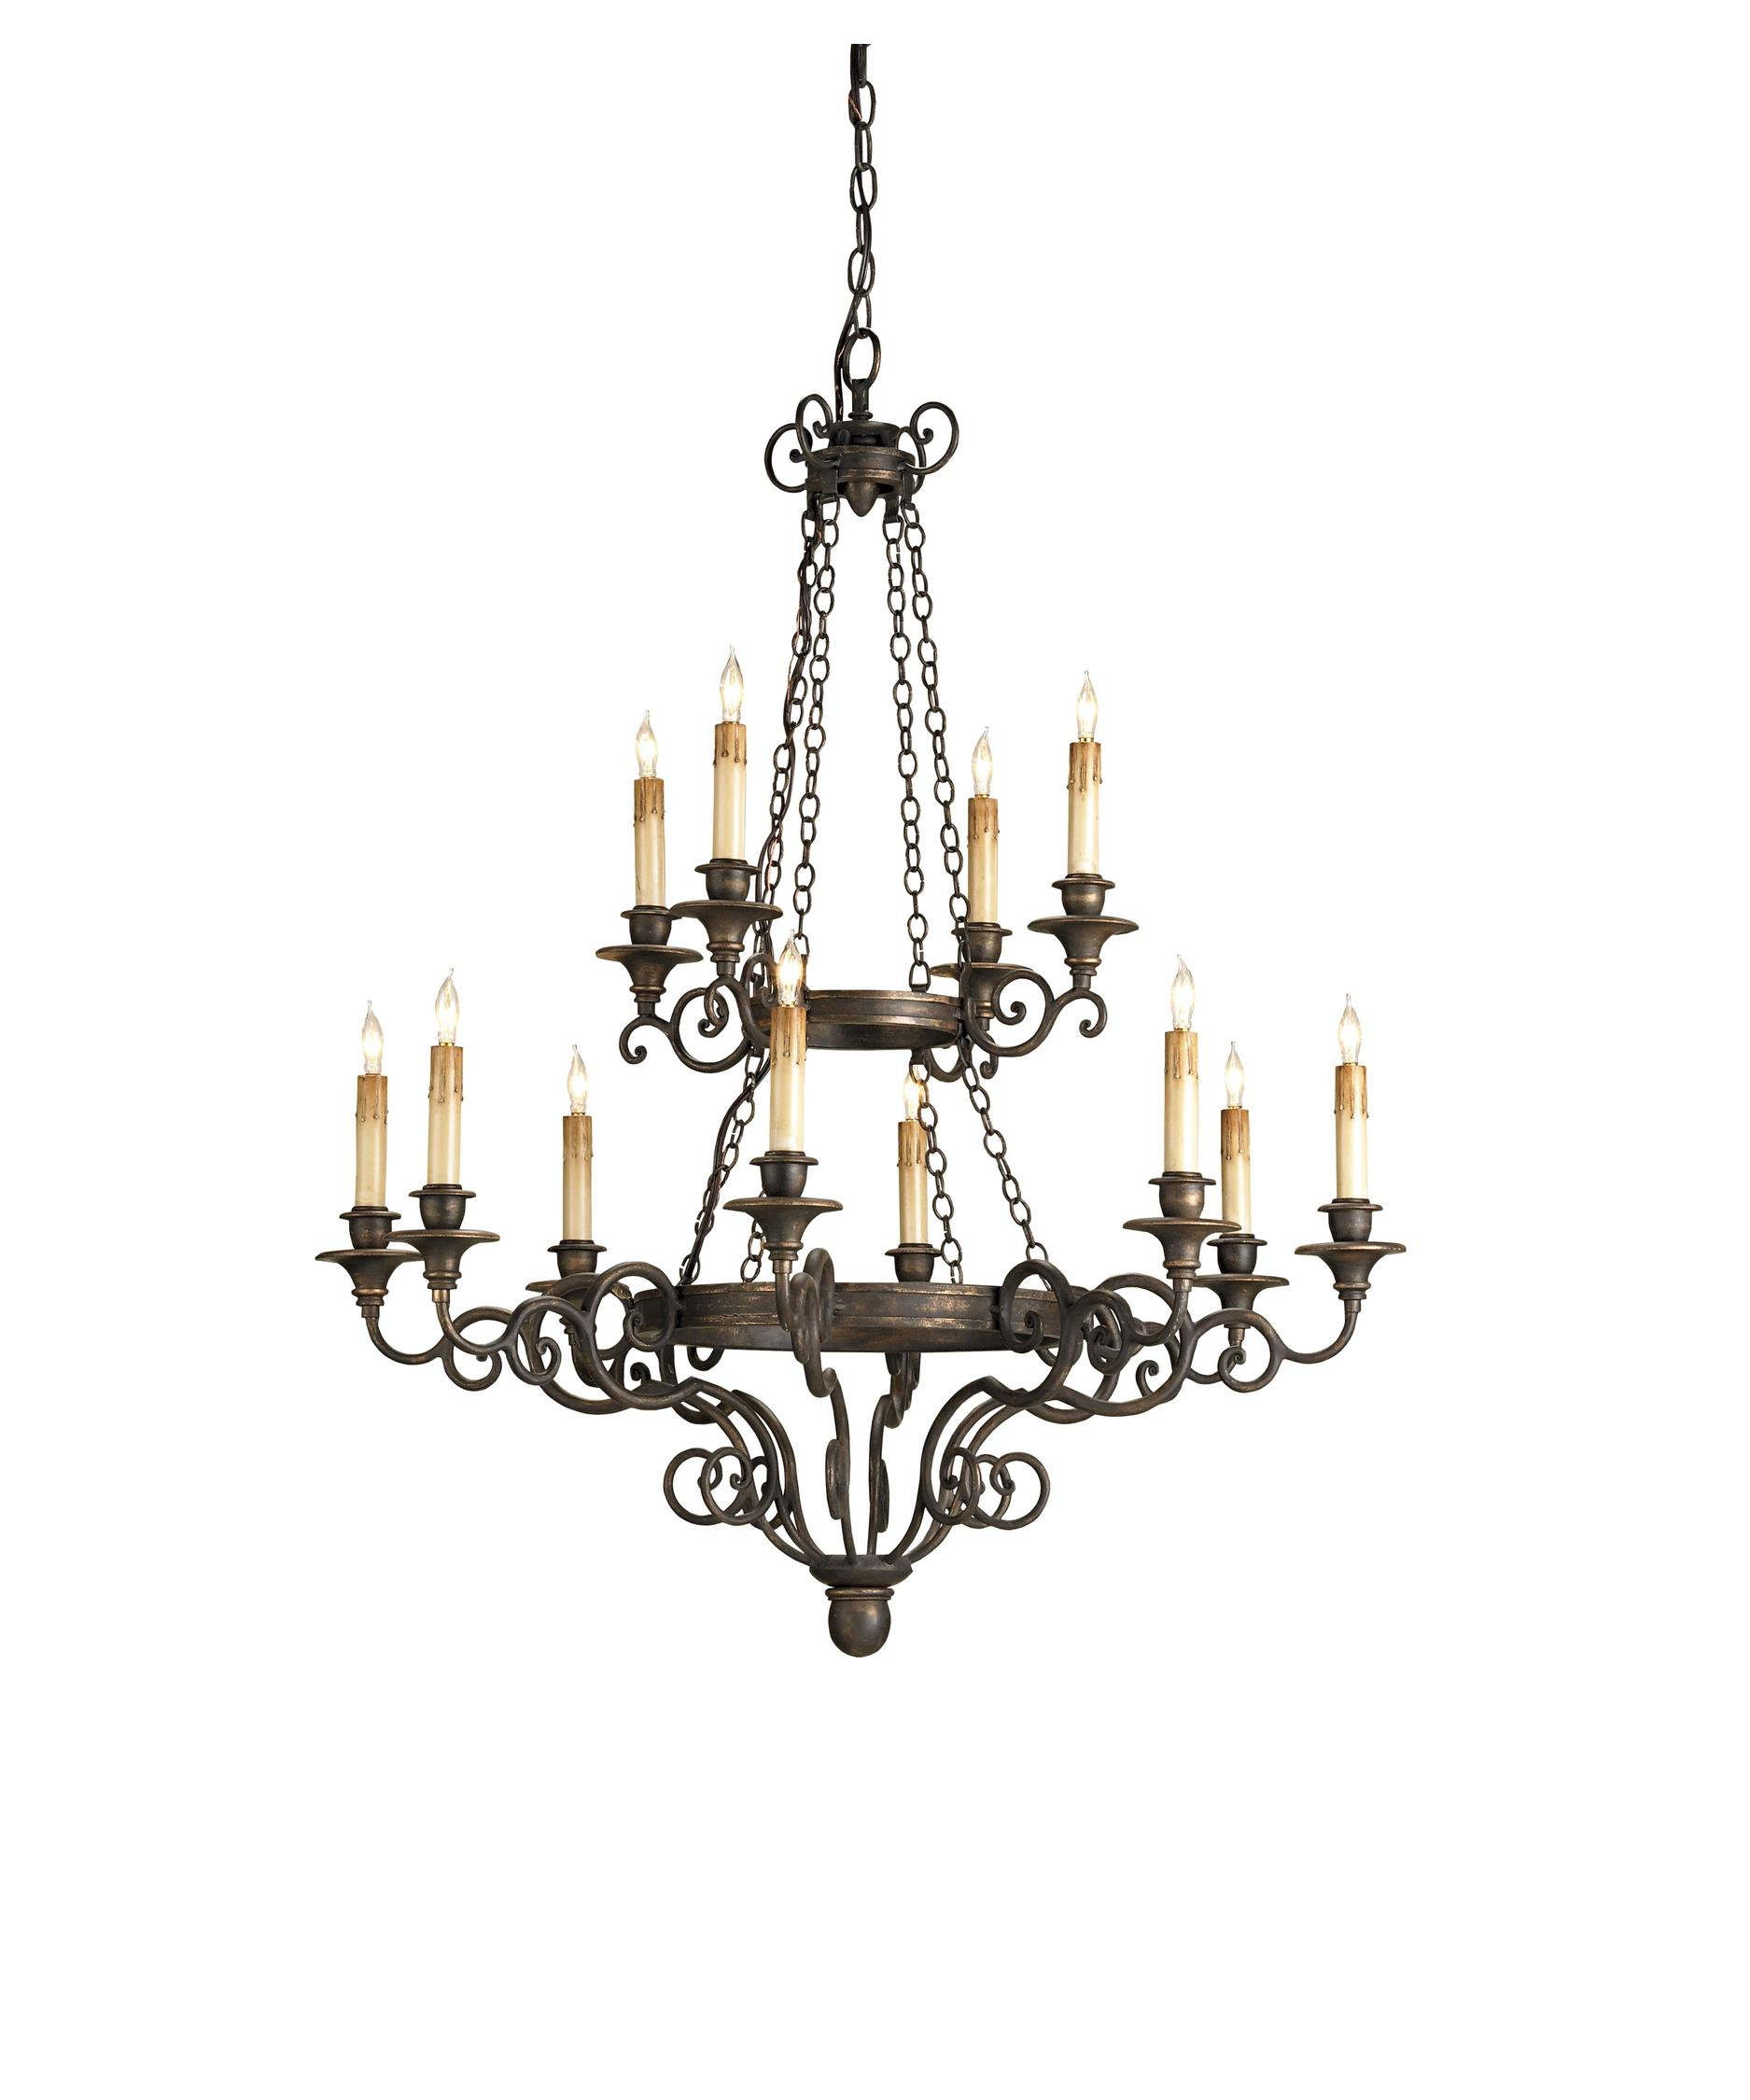 Currey and Company Galleon 33 Inch Wide 12 Light Chandelier – Currey and Company Lighting Chandeliers